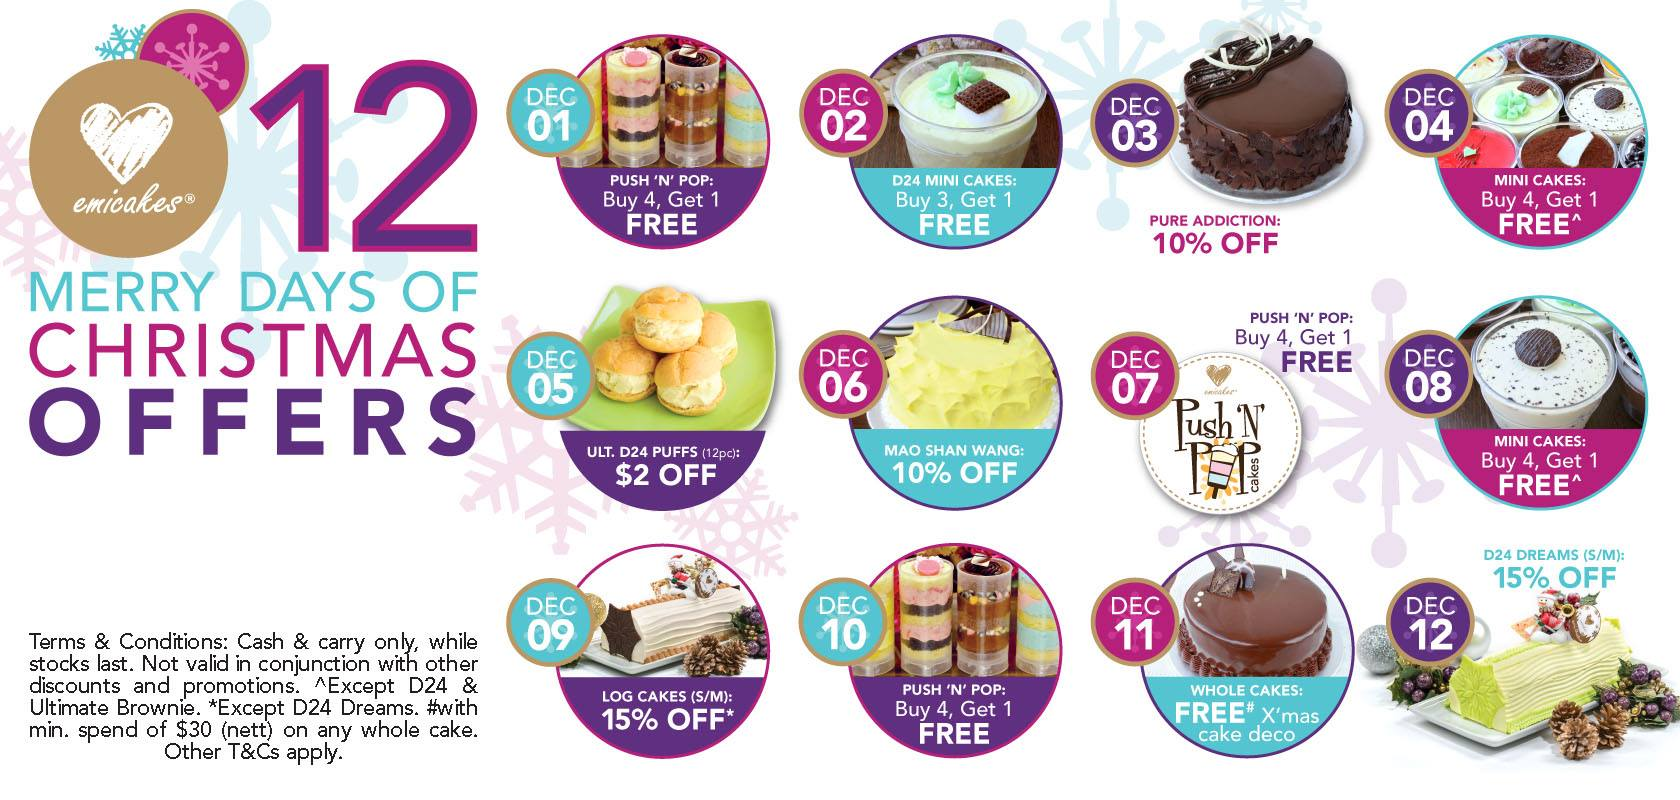 Emicakes 12 Merry Days Of Christmas Offers, Discounts & BOGO Deals On Puffs & Cakes